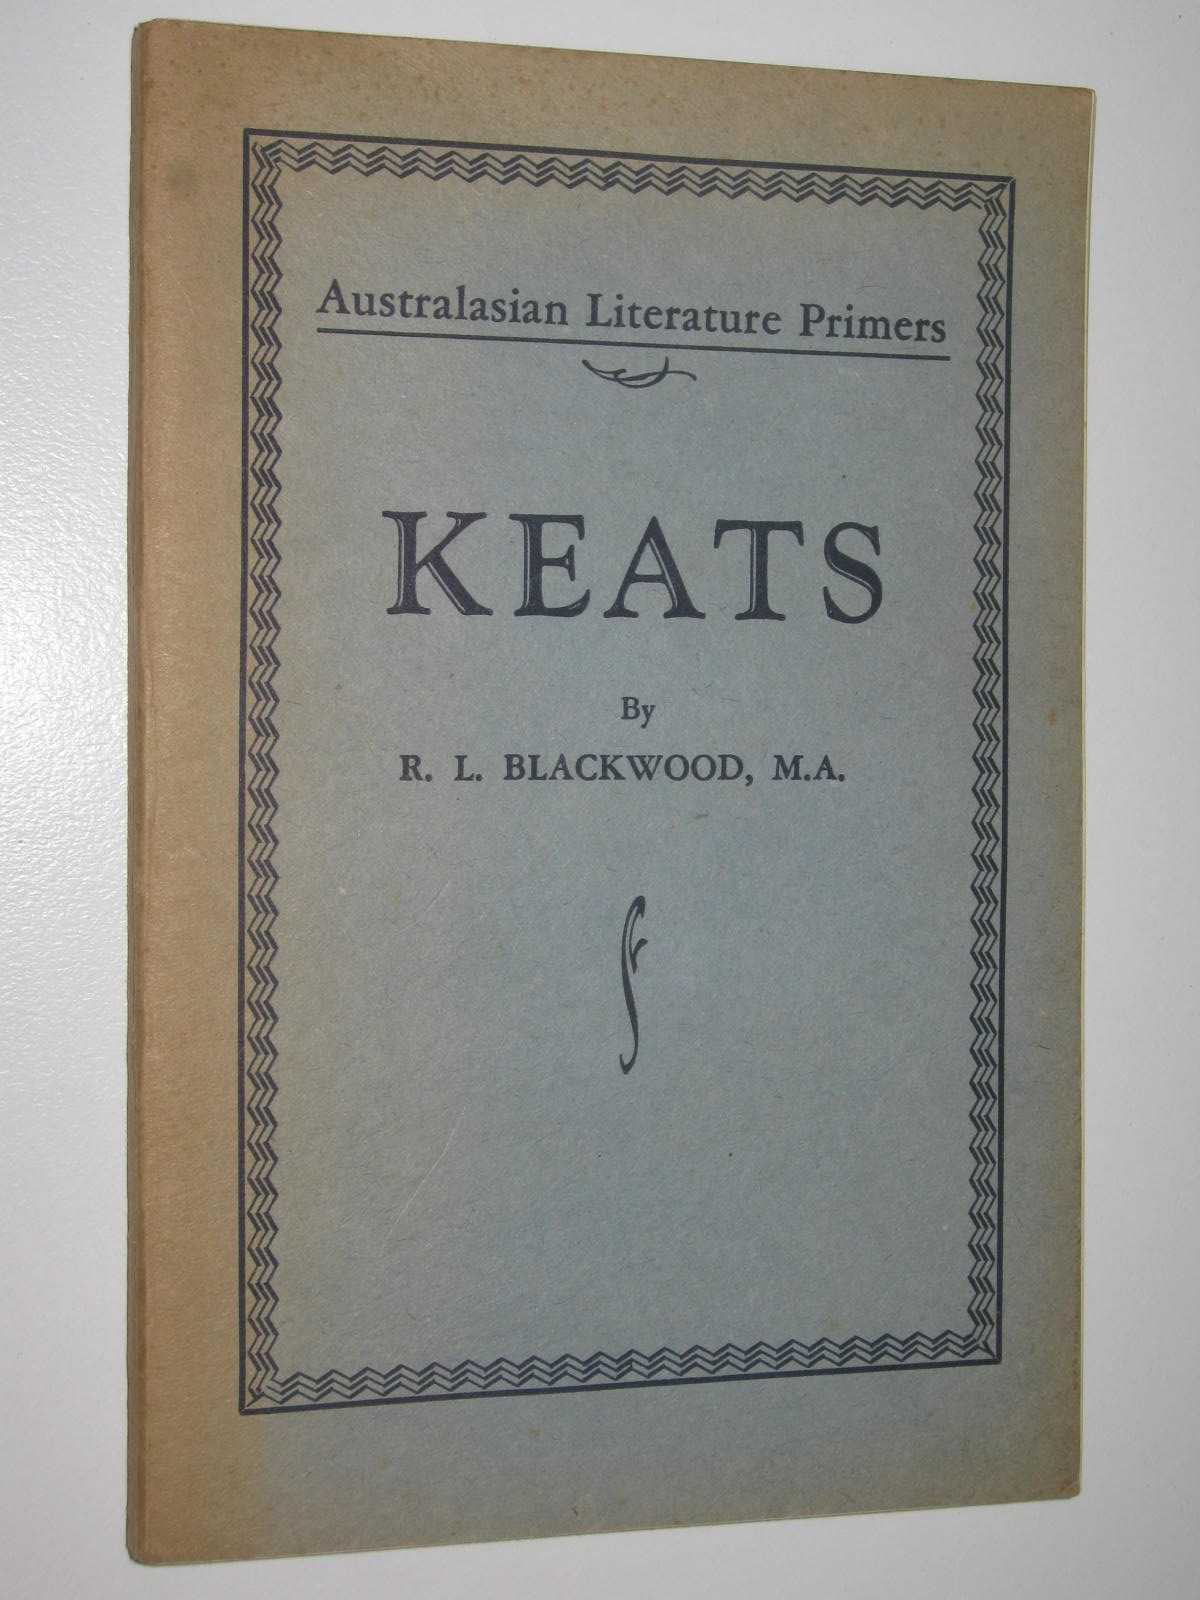 Image for Keats - Australasian Literature Primers Series